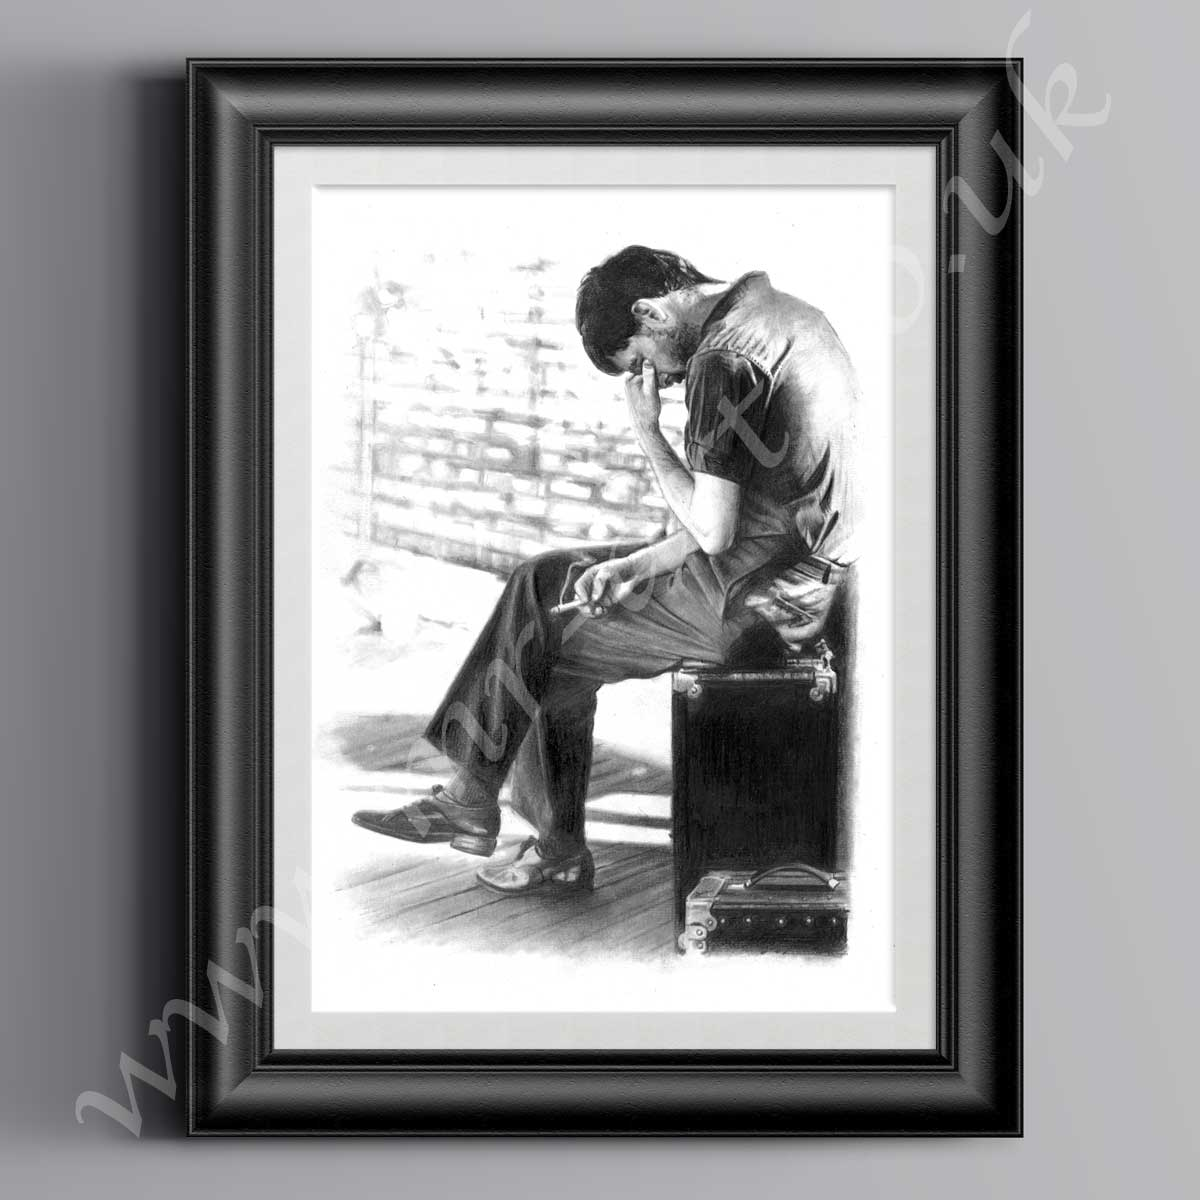 This Ian Curtis Isolation Print has originally been drawn in pencil by Mark Reynolds.